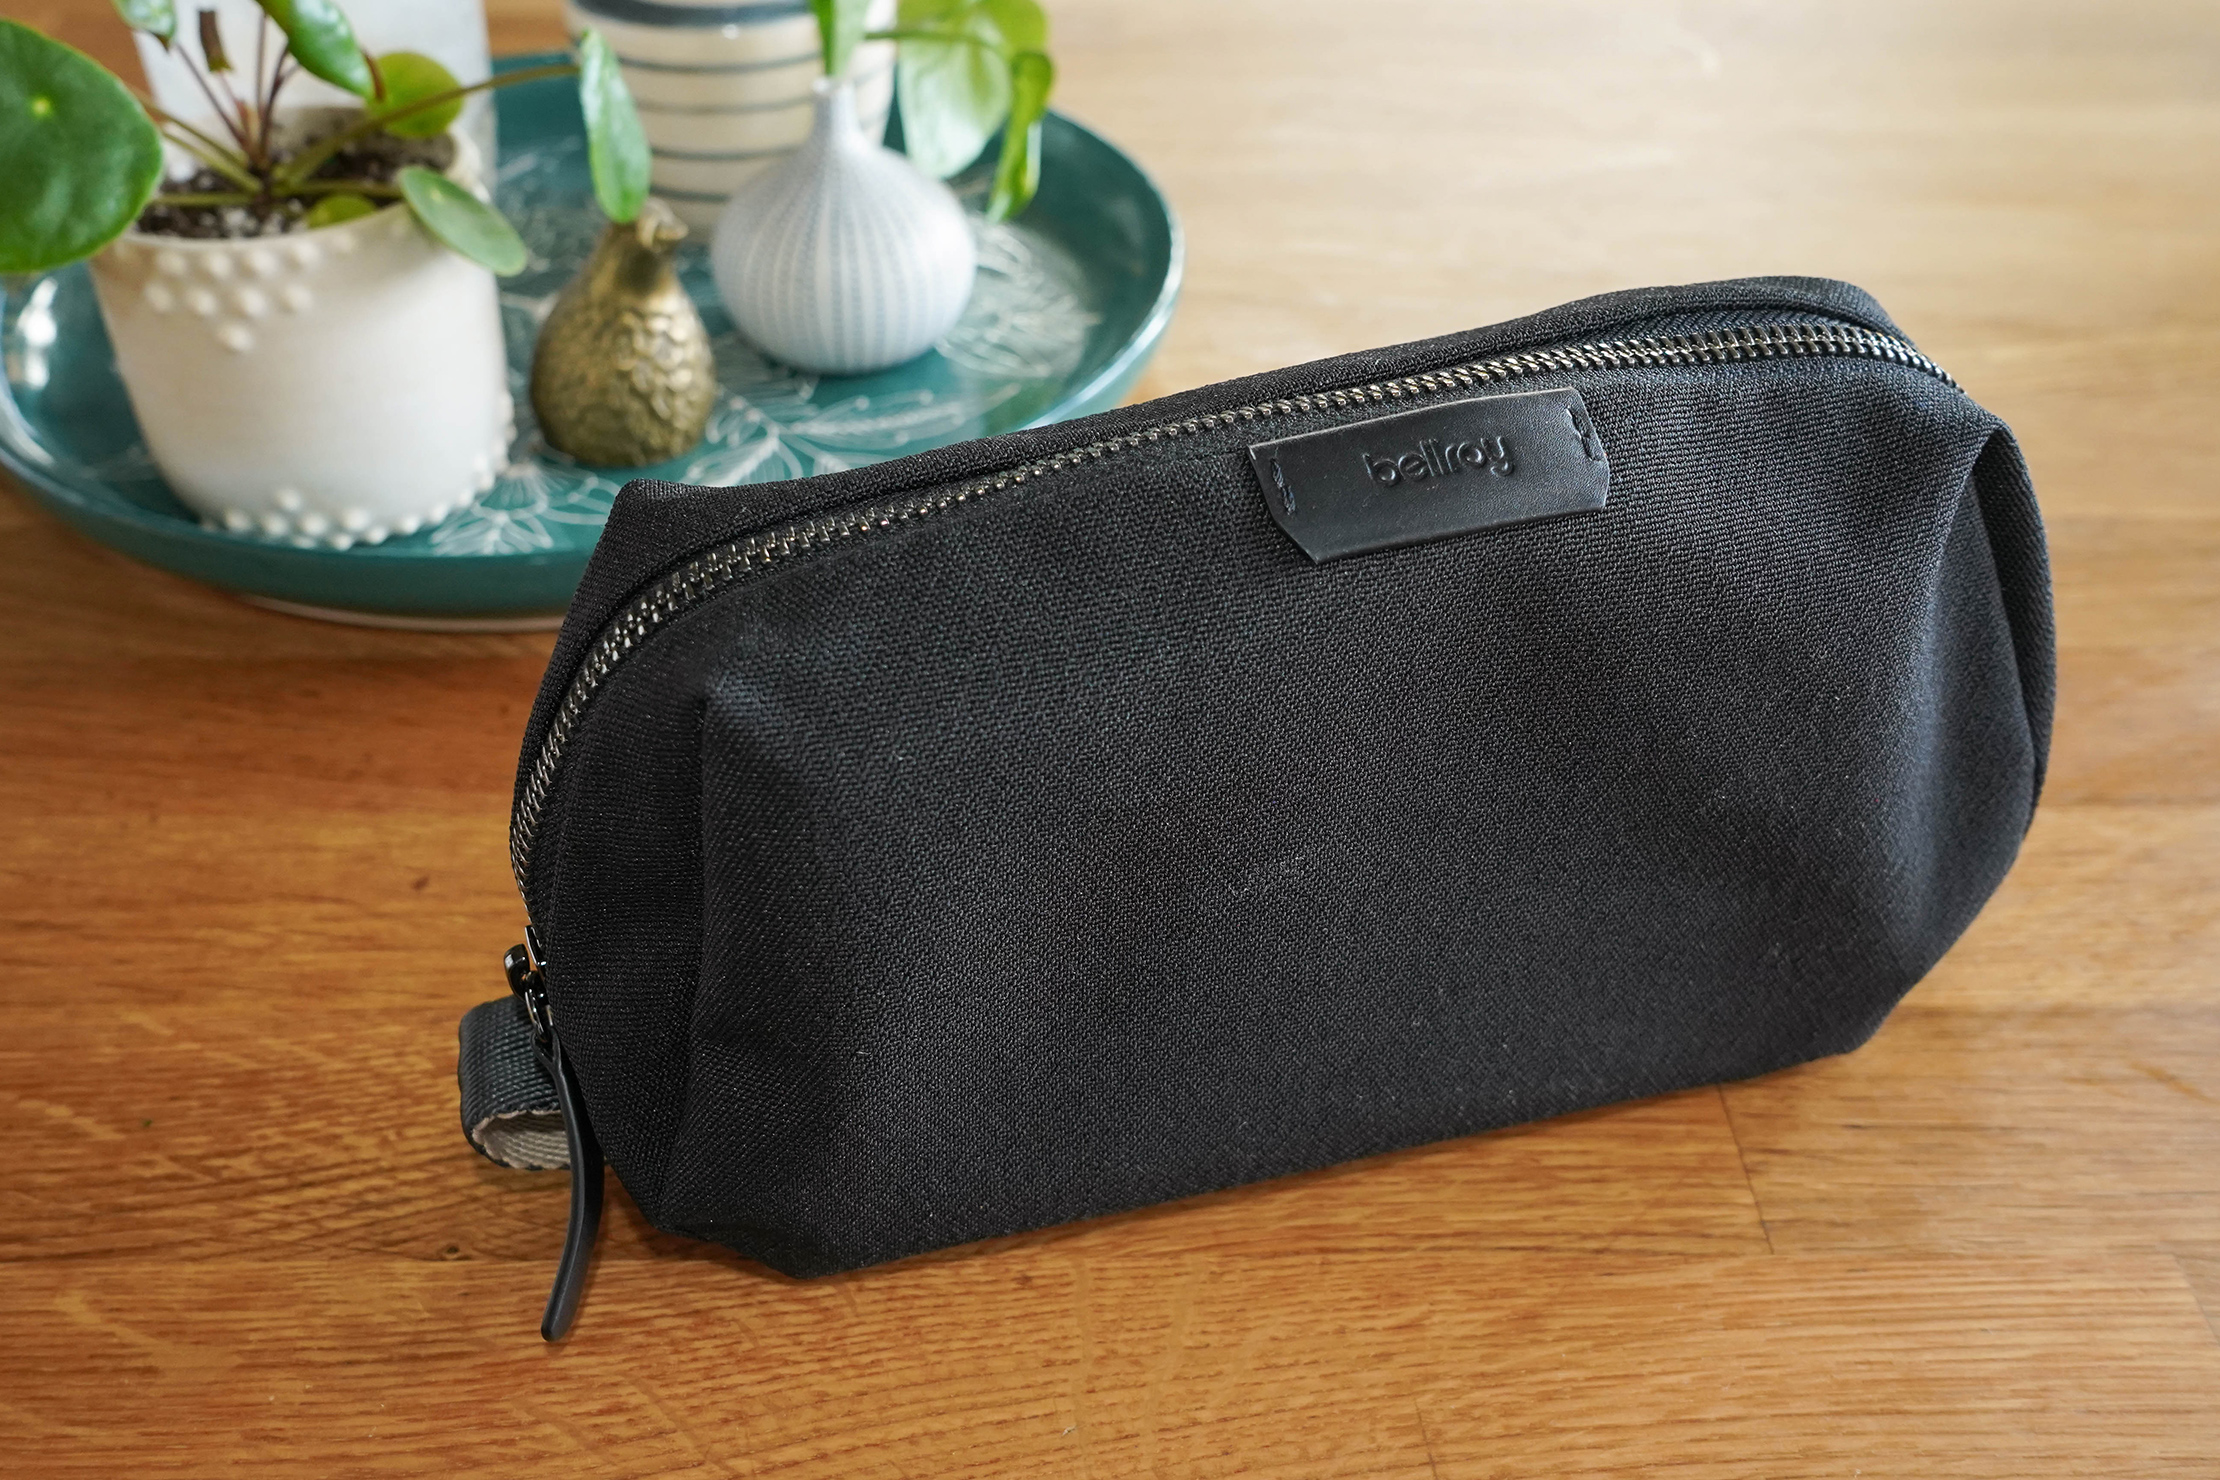 Bellroy Dopp Kit On Table